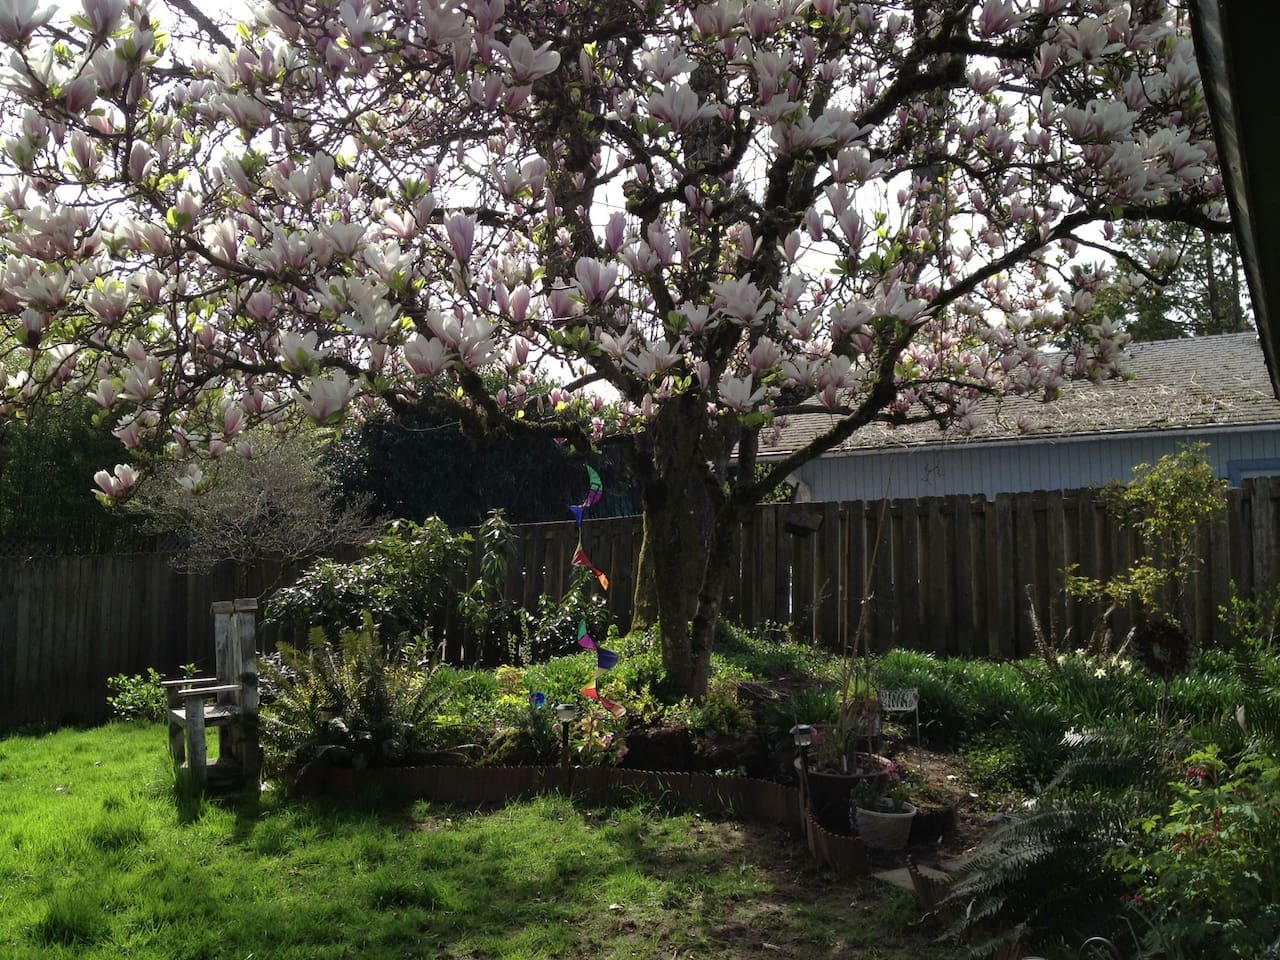 Garden oasis in the beautiful, spacious backyard. The magnolia tree blooms twice a year.